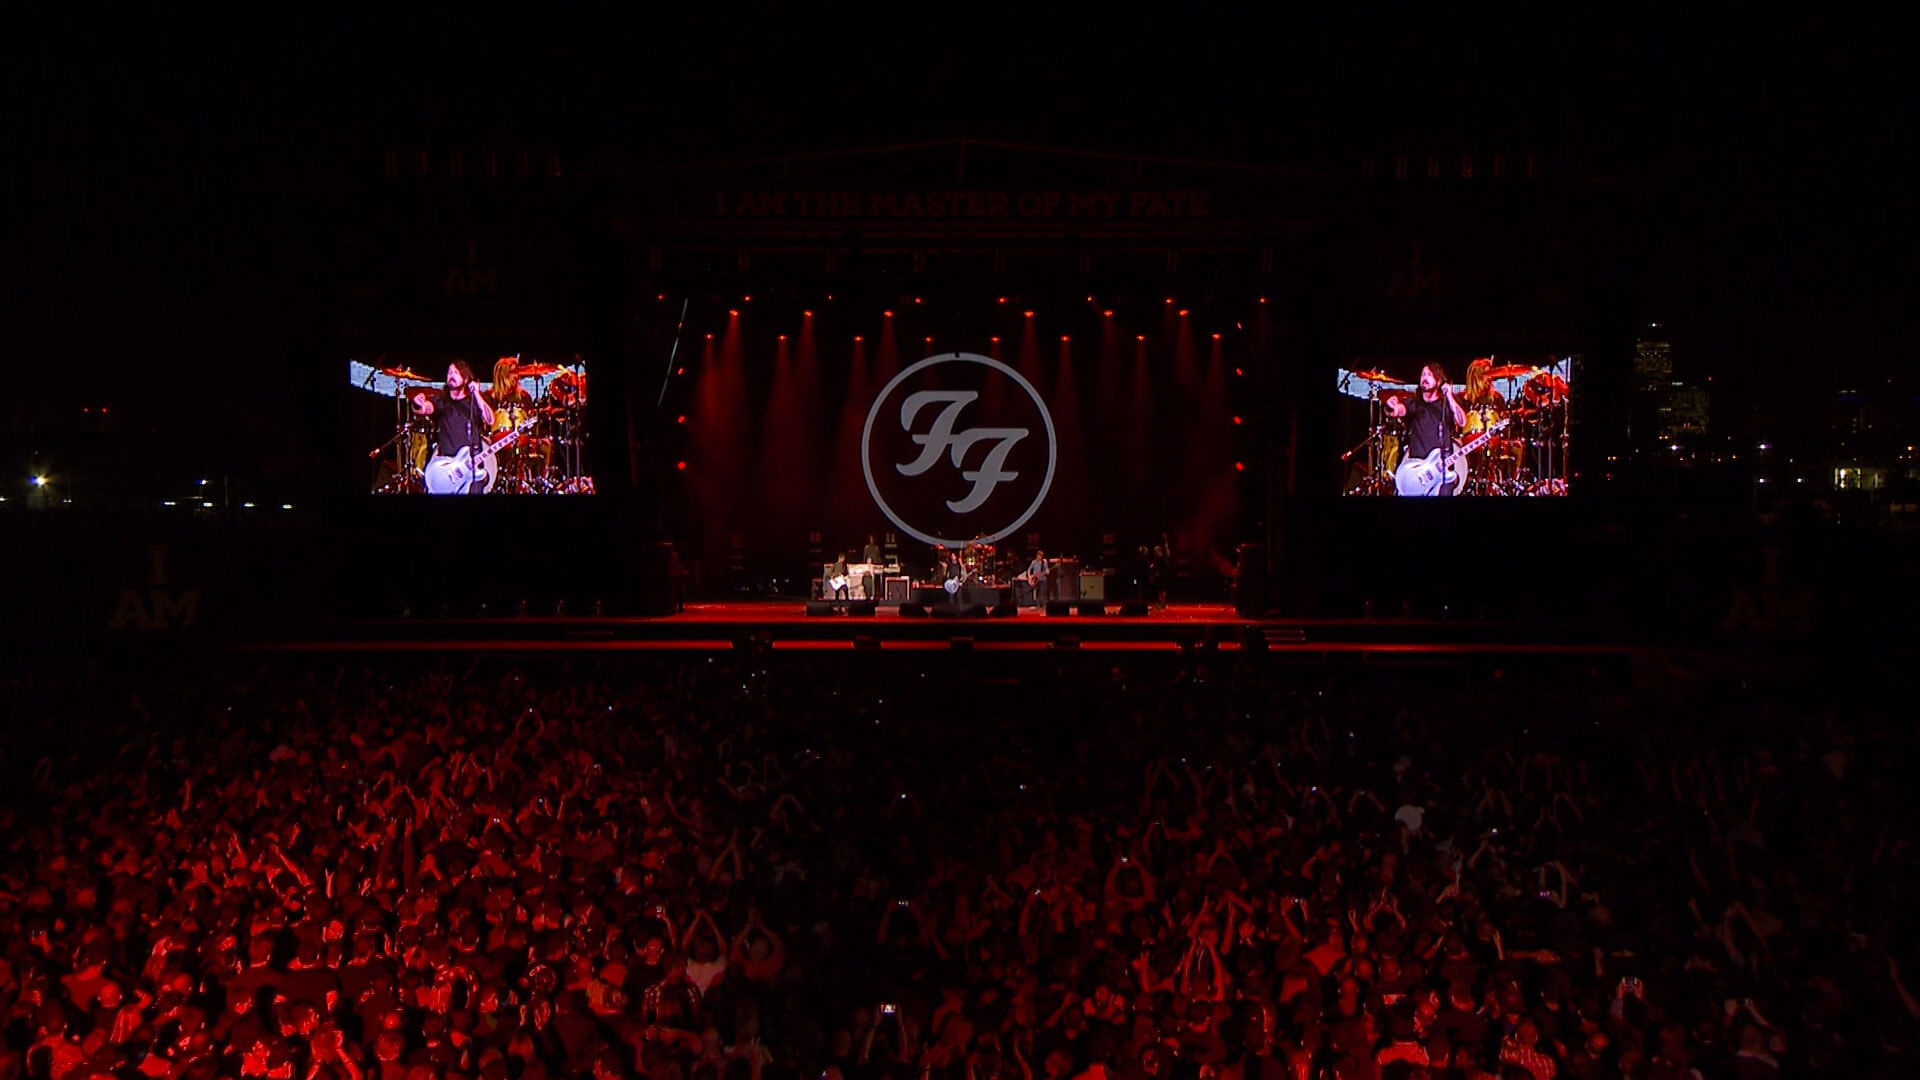 Foo Fighters Invictus Games Closing Concert 2014 H264 1080i 29mbps